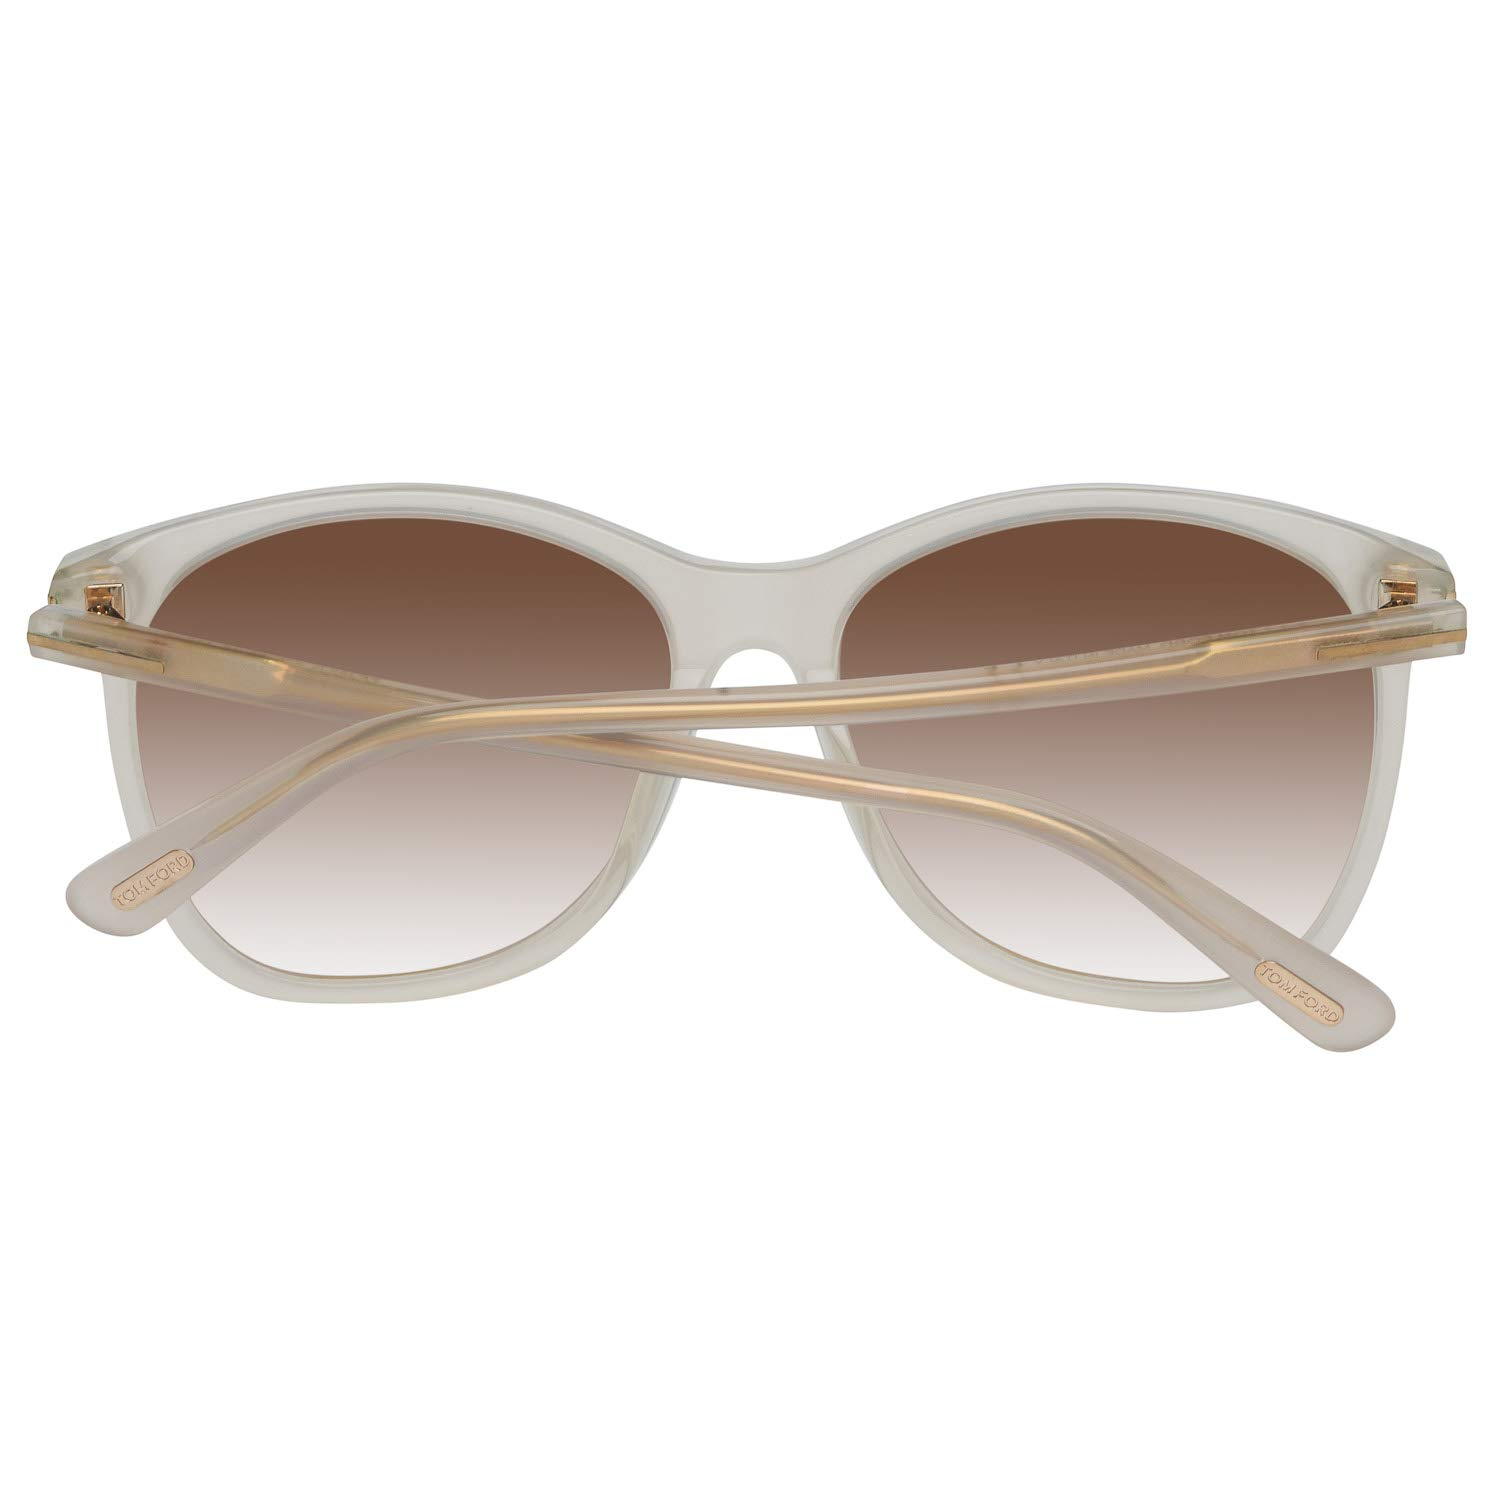 Tom Ford Sunglasses Ft0485-D 57F 58 Gafas de sol, Beige ...